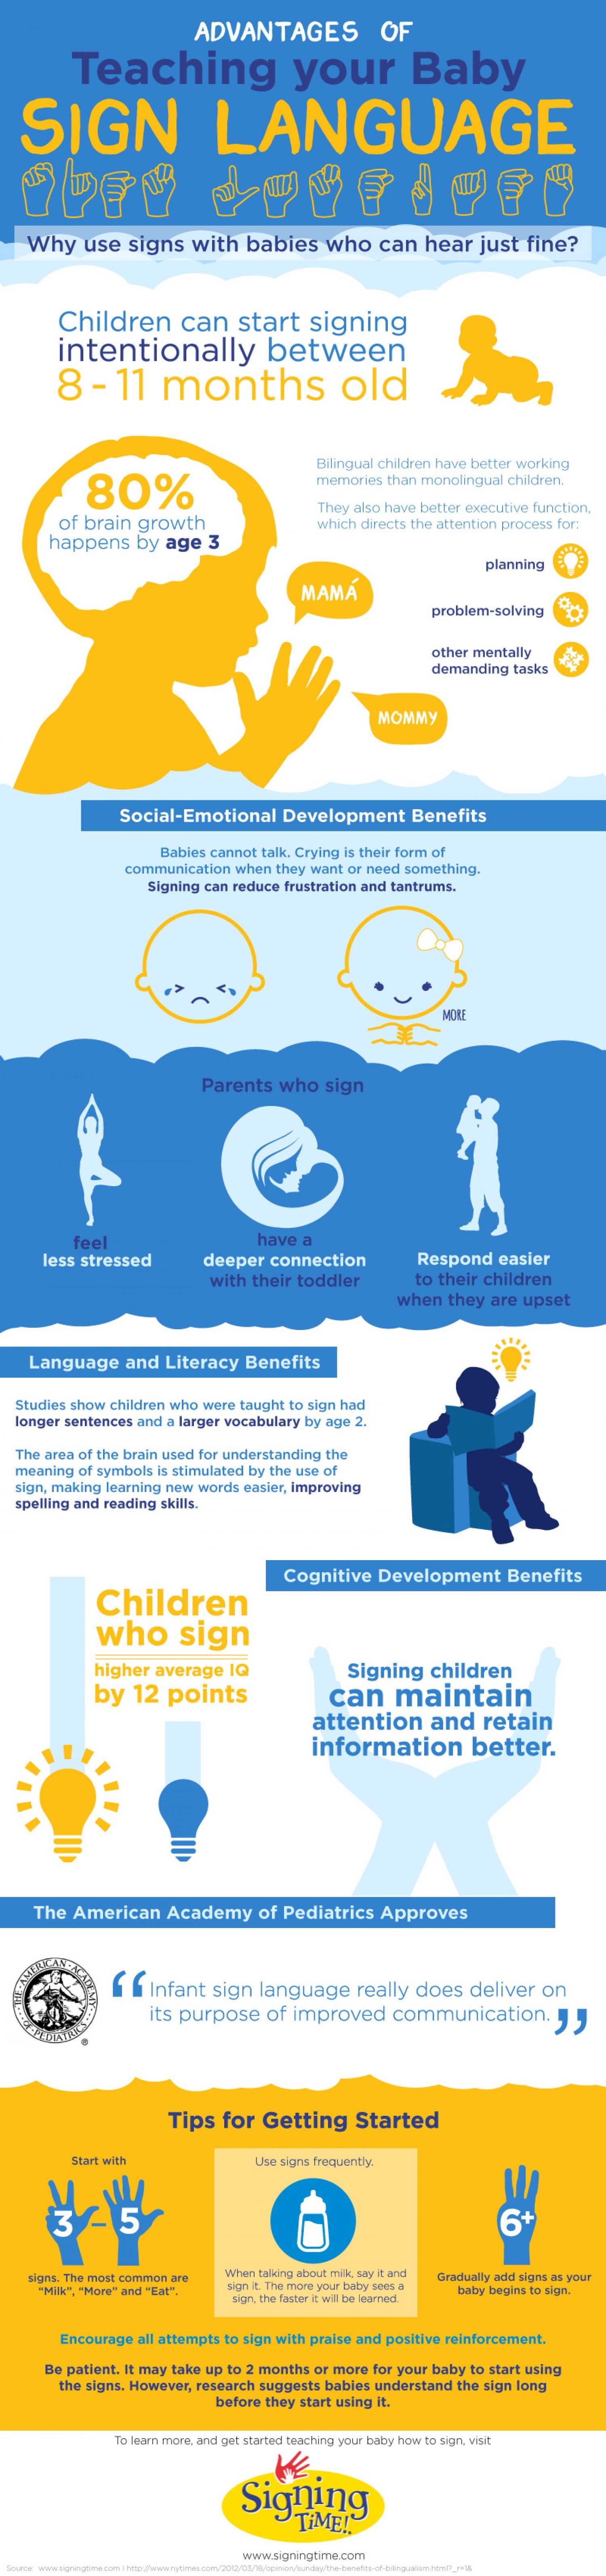 Advantages Of Teaching Baby Sign Language